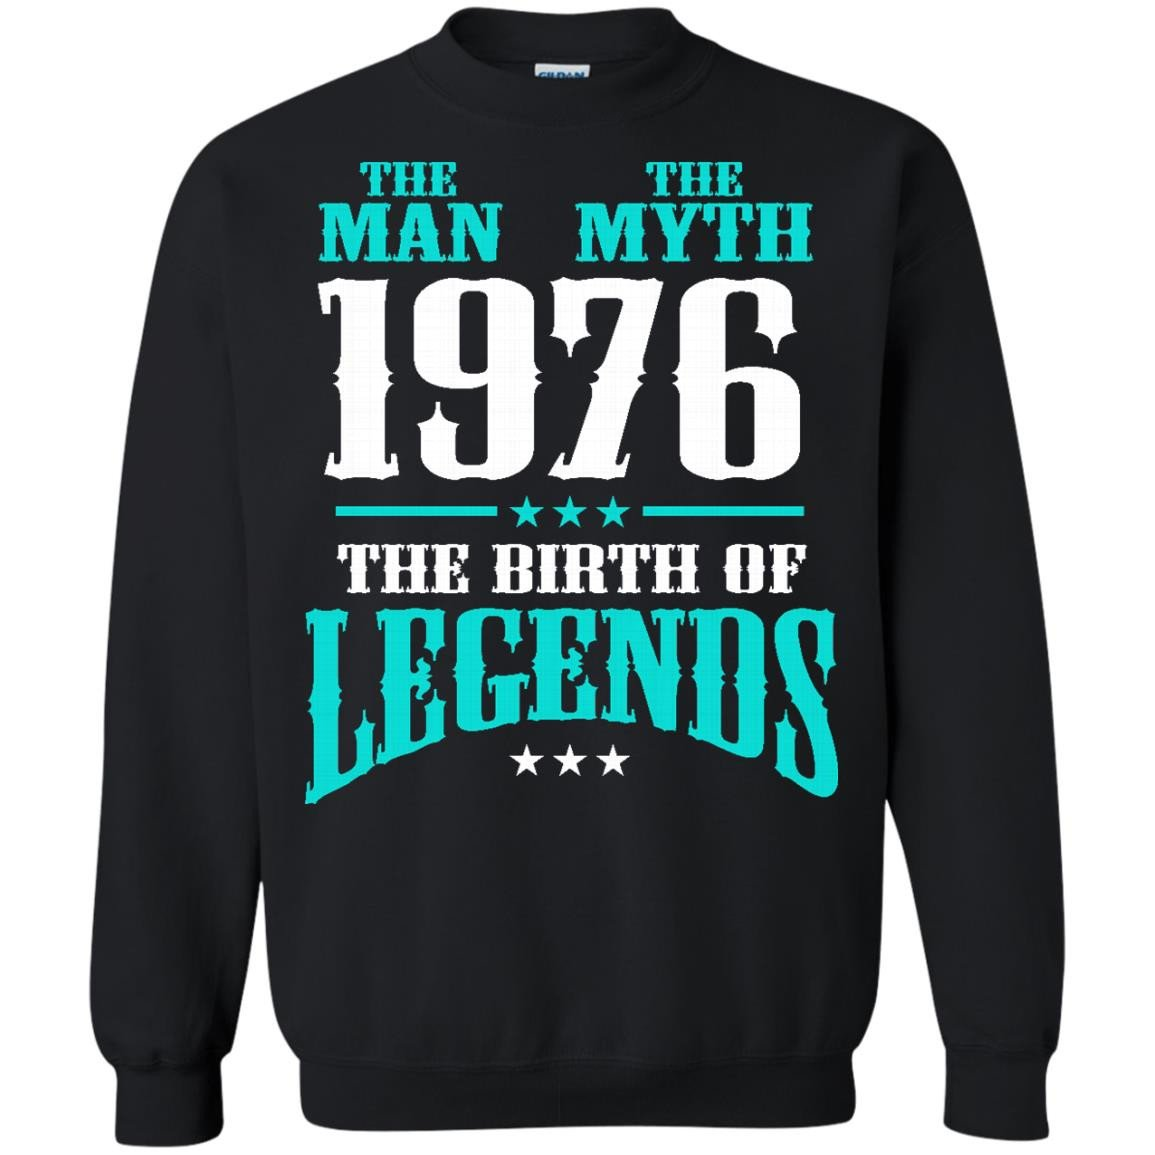 1976 Shirts The Man The Myth The Birth Of Legends T-shirts Hoodies Sweatshirts